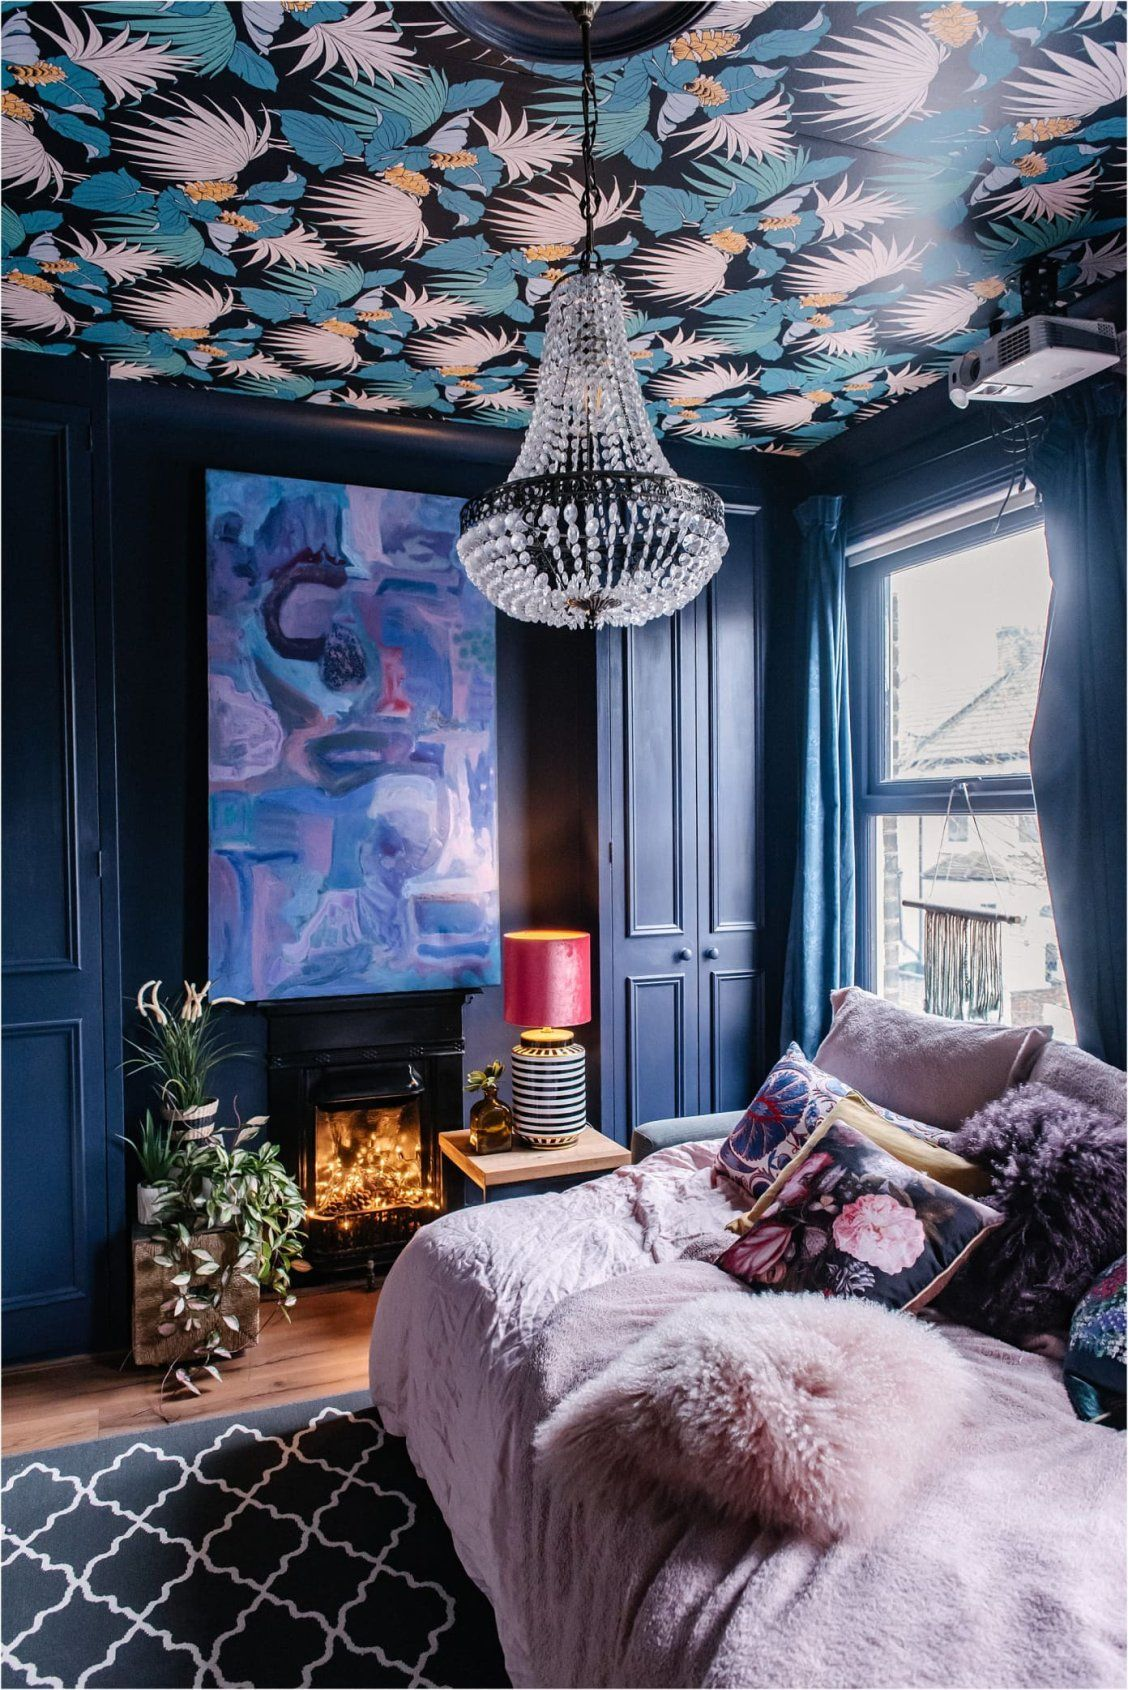 Every Room Of This London House Is An Explosion Of Envy Inducing Color And Pattern In 2020 London House Home Decor